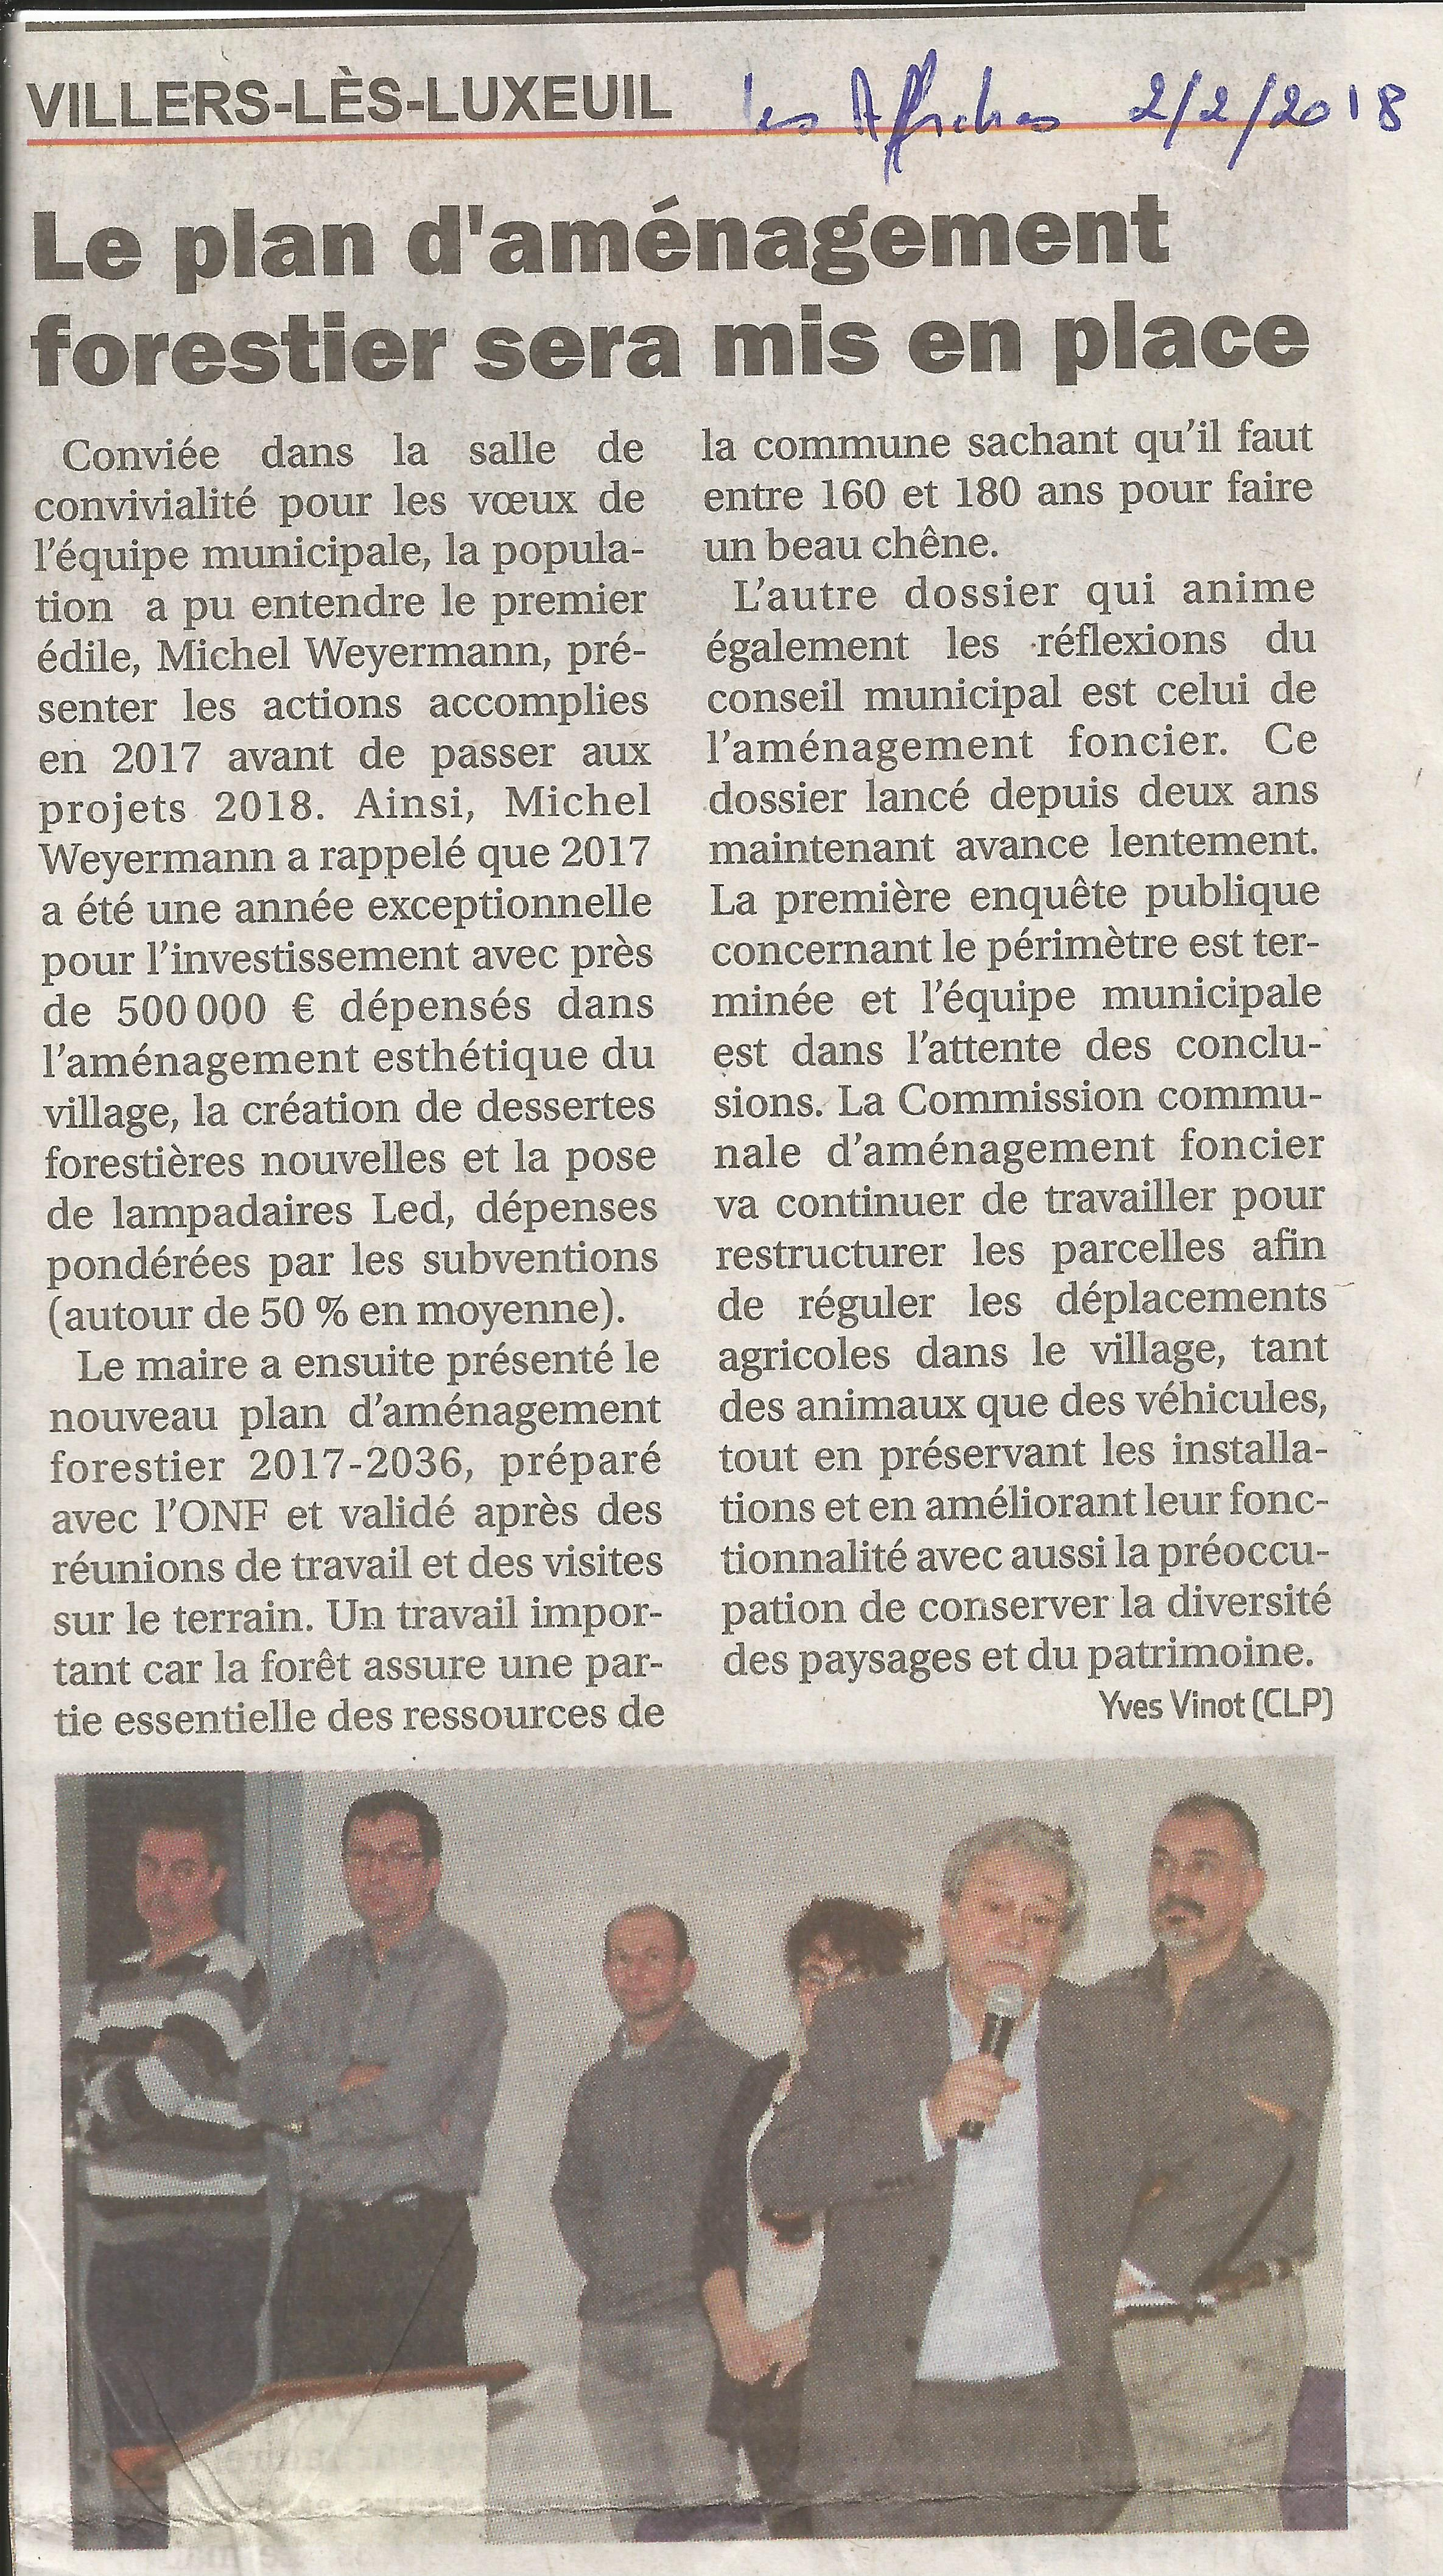 https://www.villers-les-luxeuil.com/projets/villers/files/images/2018_Mairie/Presse/2018_02_02.jpg